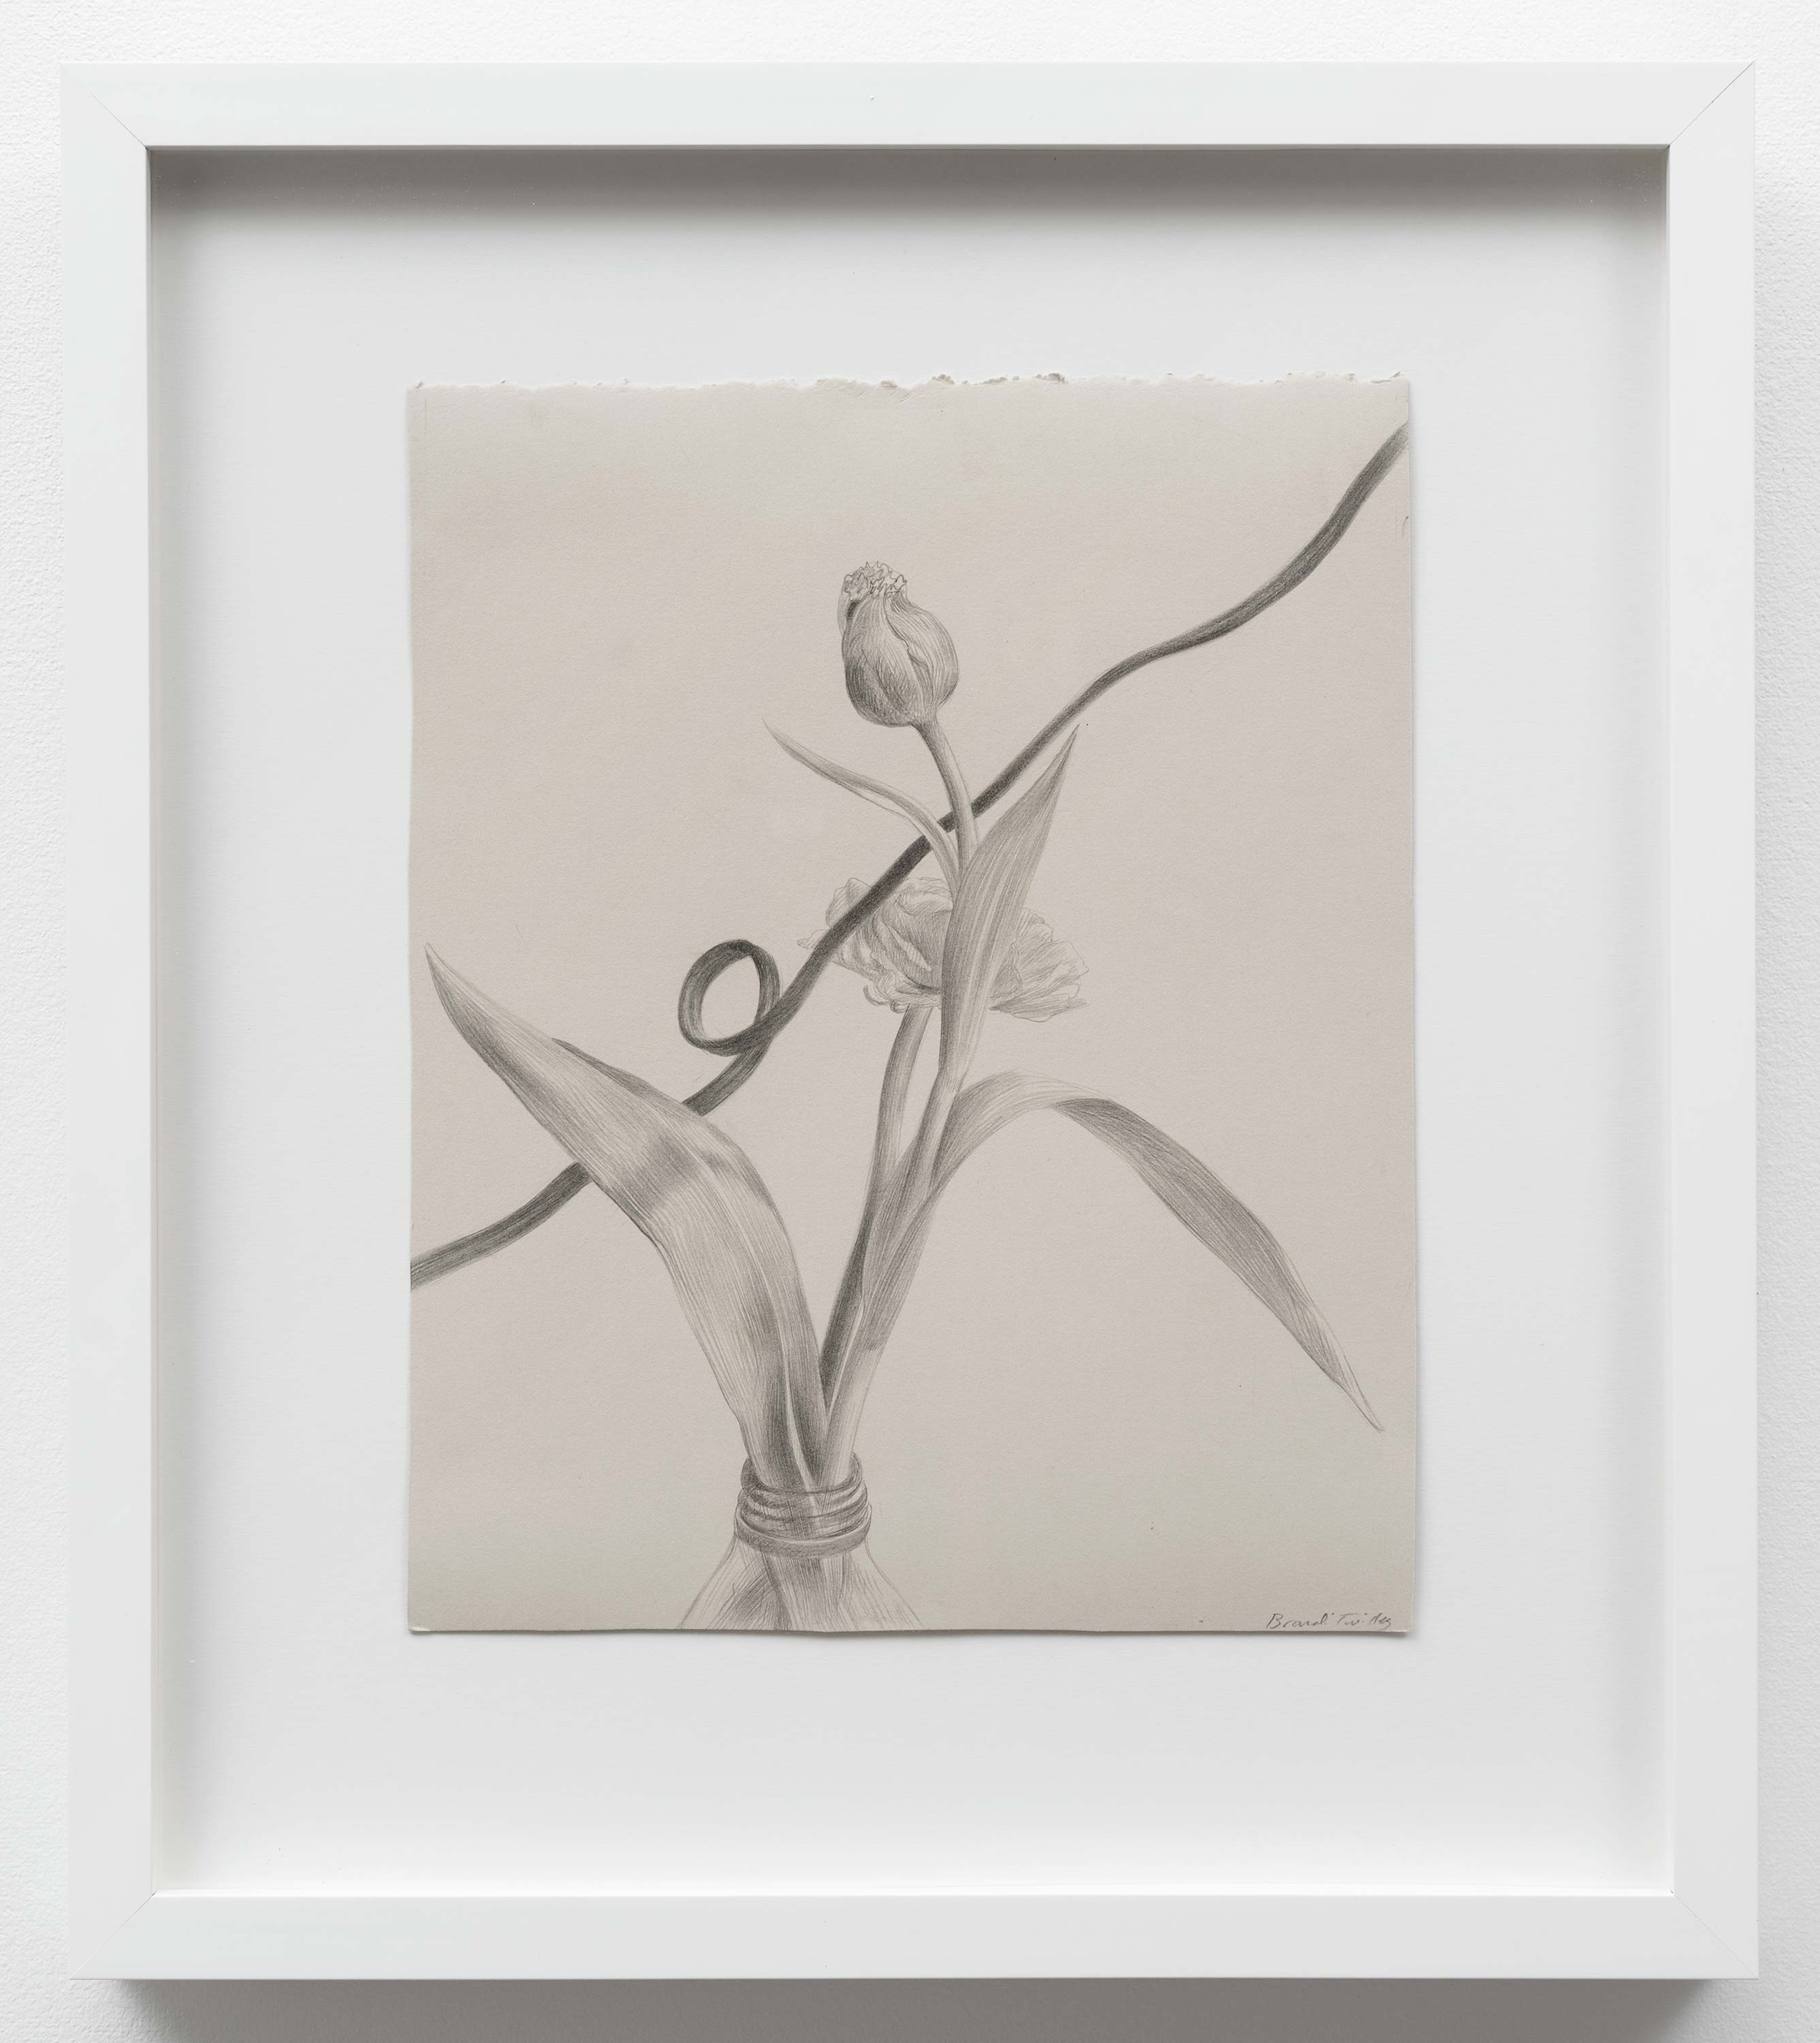 Brandi Twilley<br>Flowers with Cord II<br>2014<br>Graphite on gray paper<br>9 x 11 inches (23 x 28 cm)